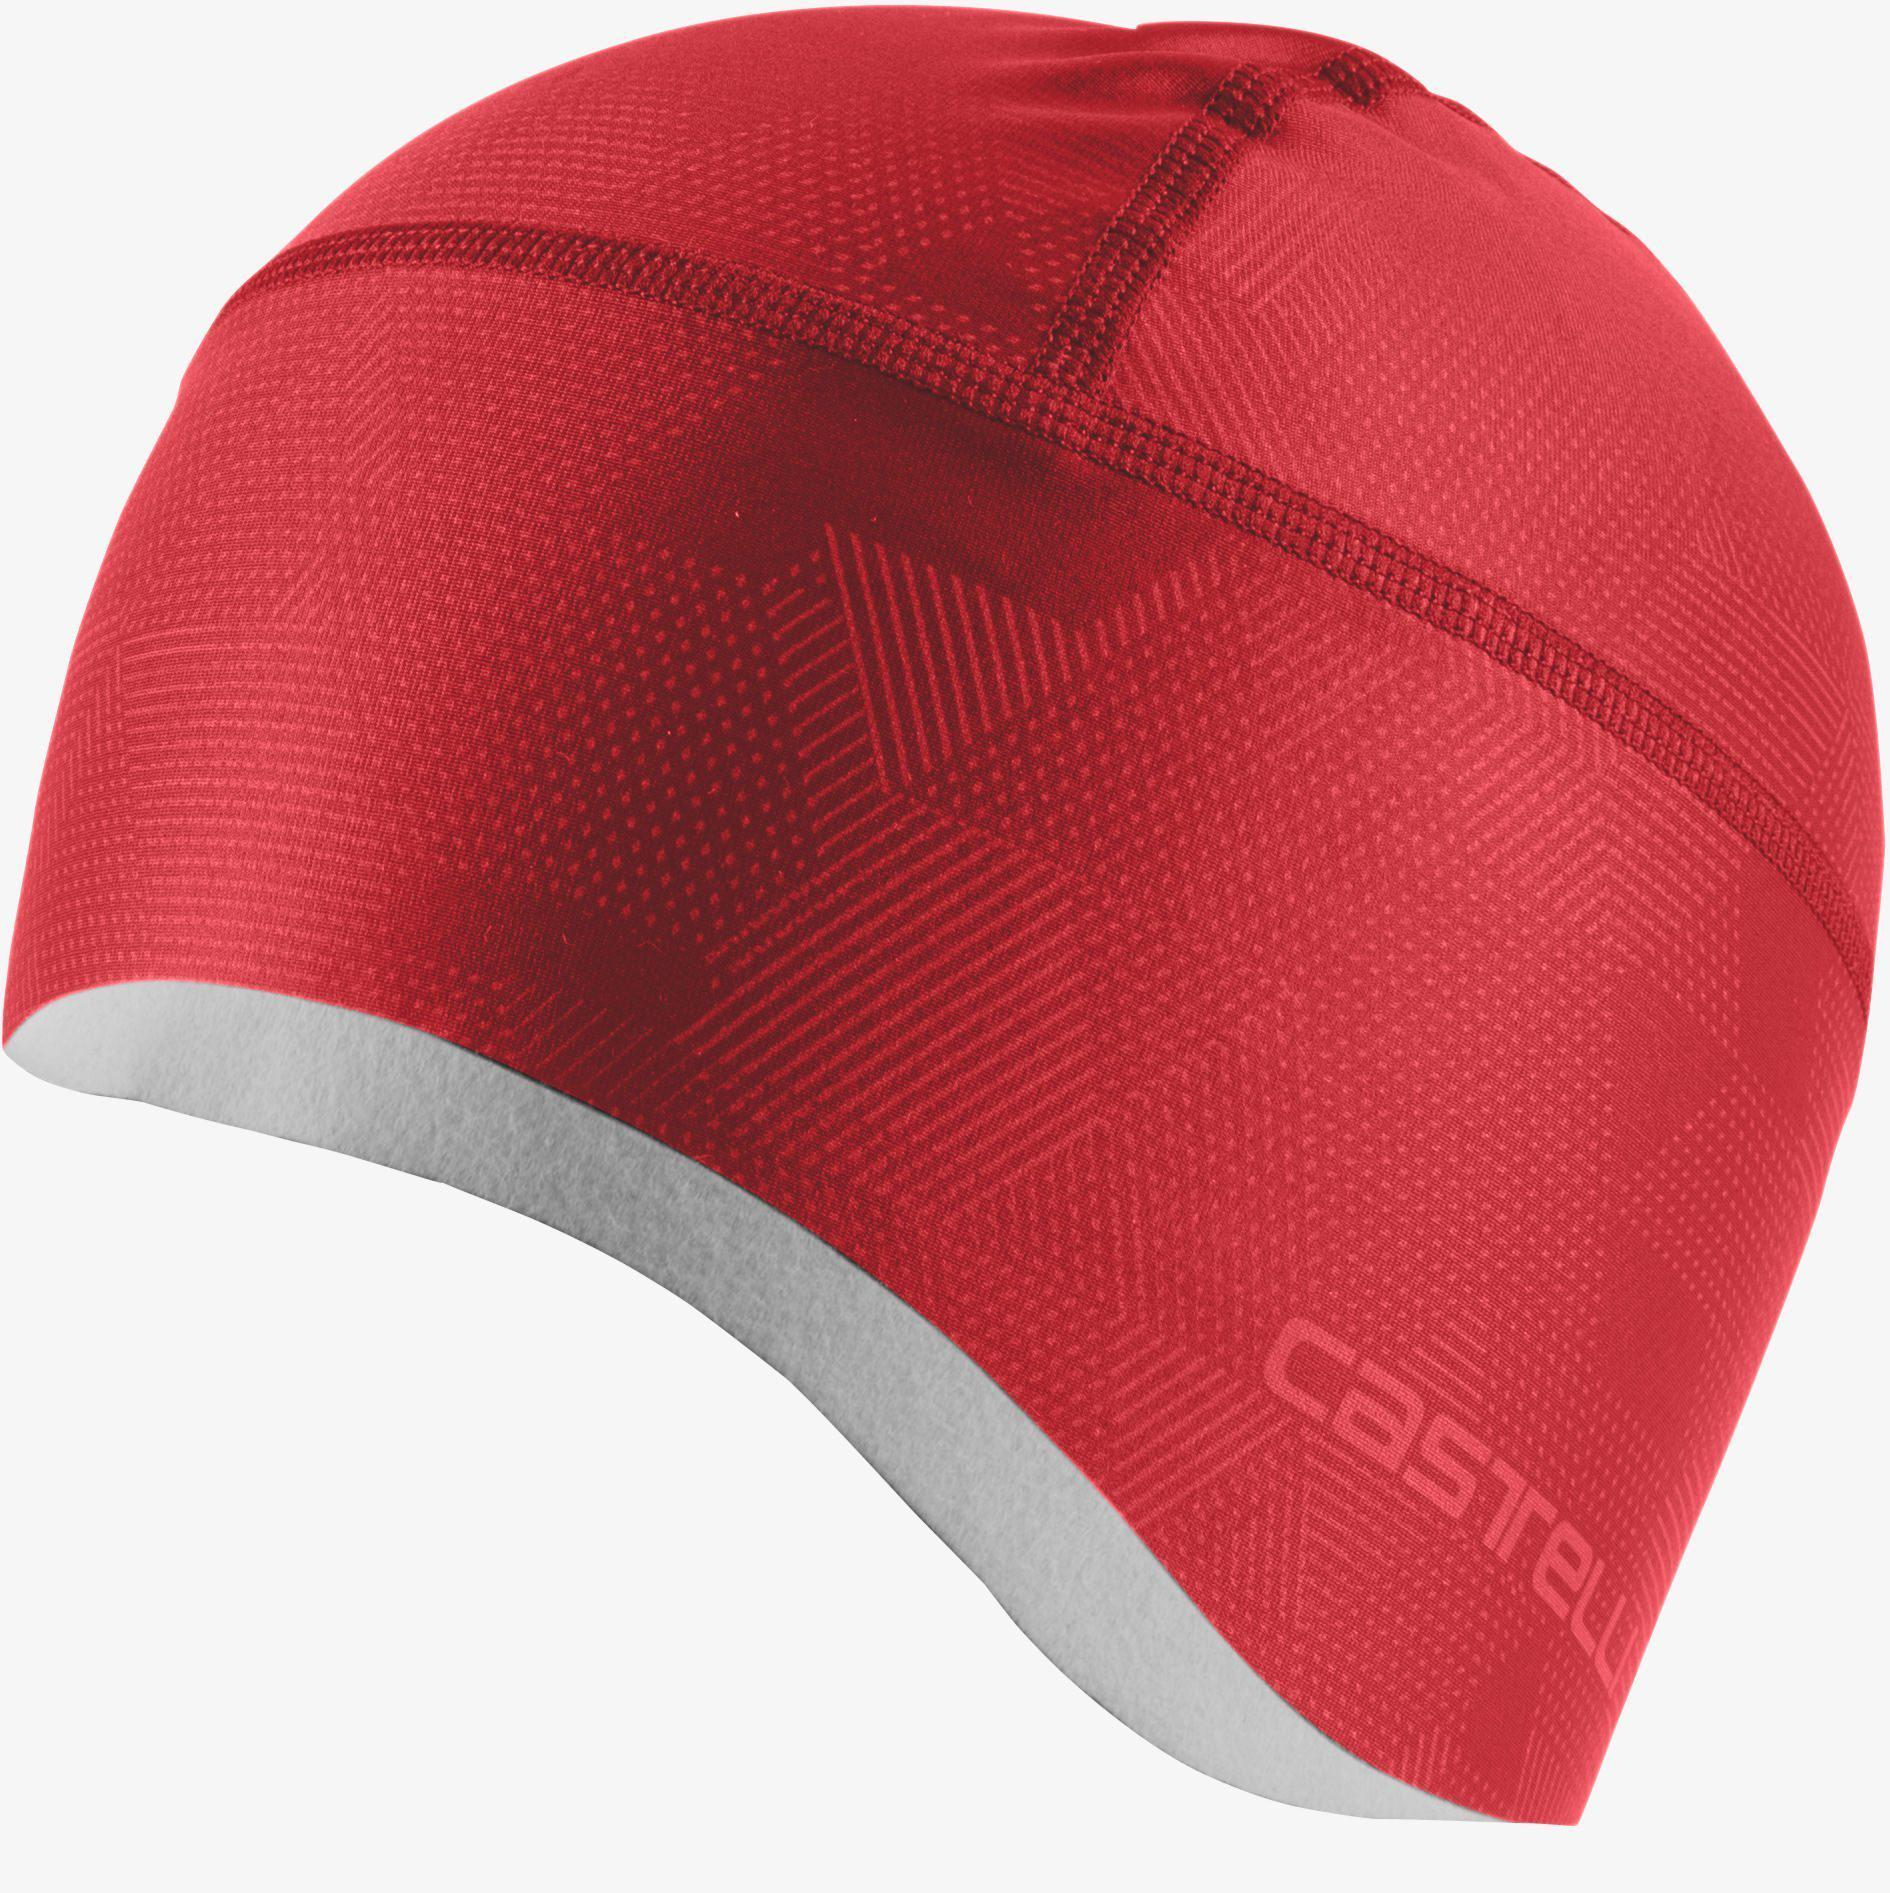 Castelli-Castelli Pro Thermal Skully-Red-UNI-CS205420238-saddleback-elite-performance-cycling